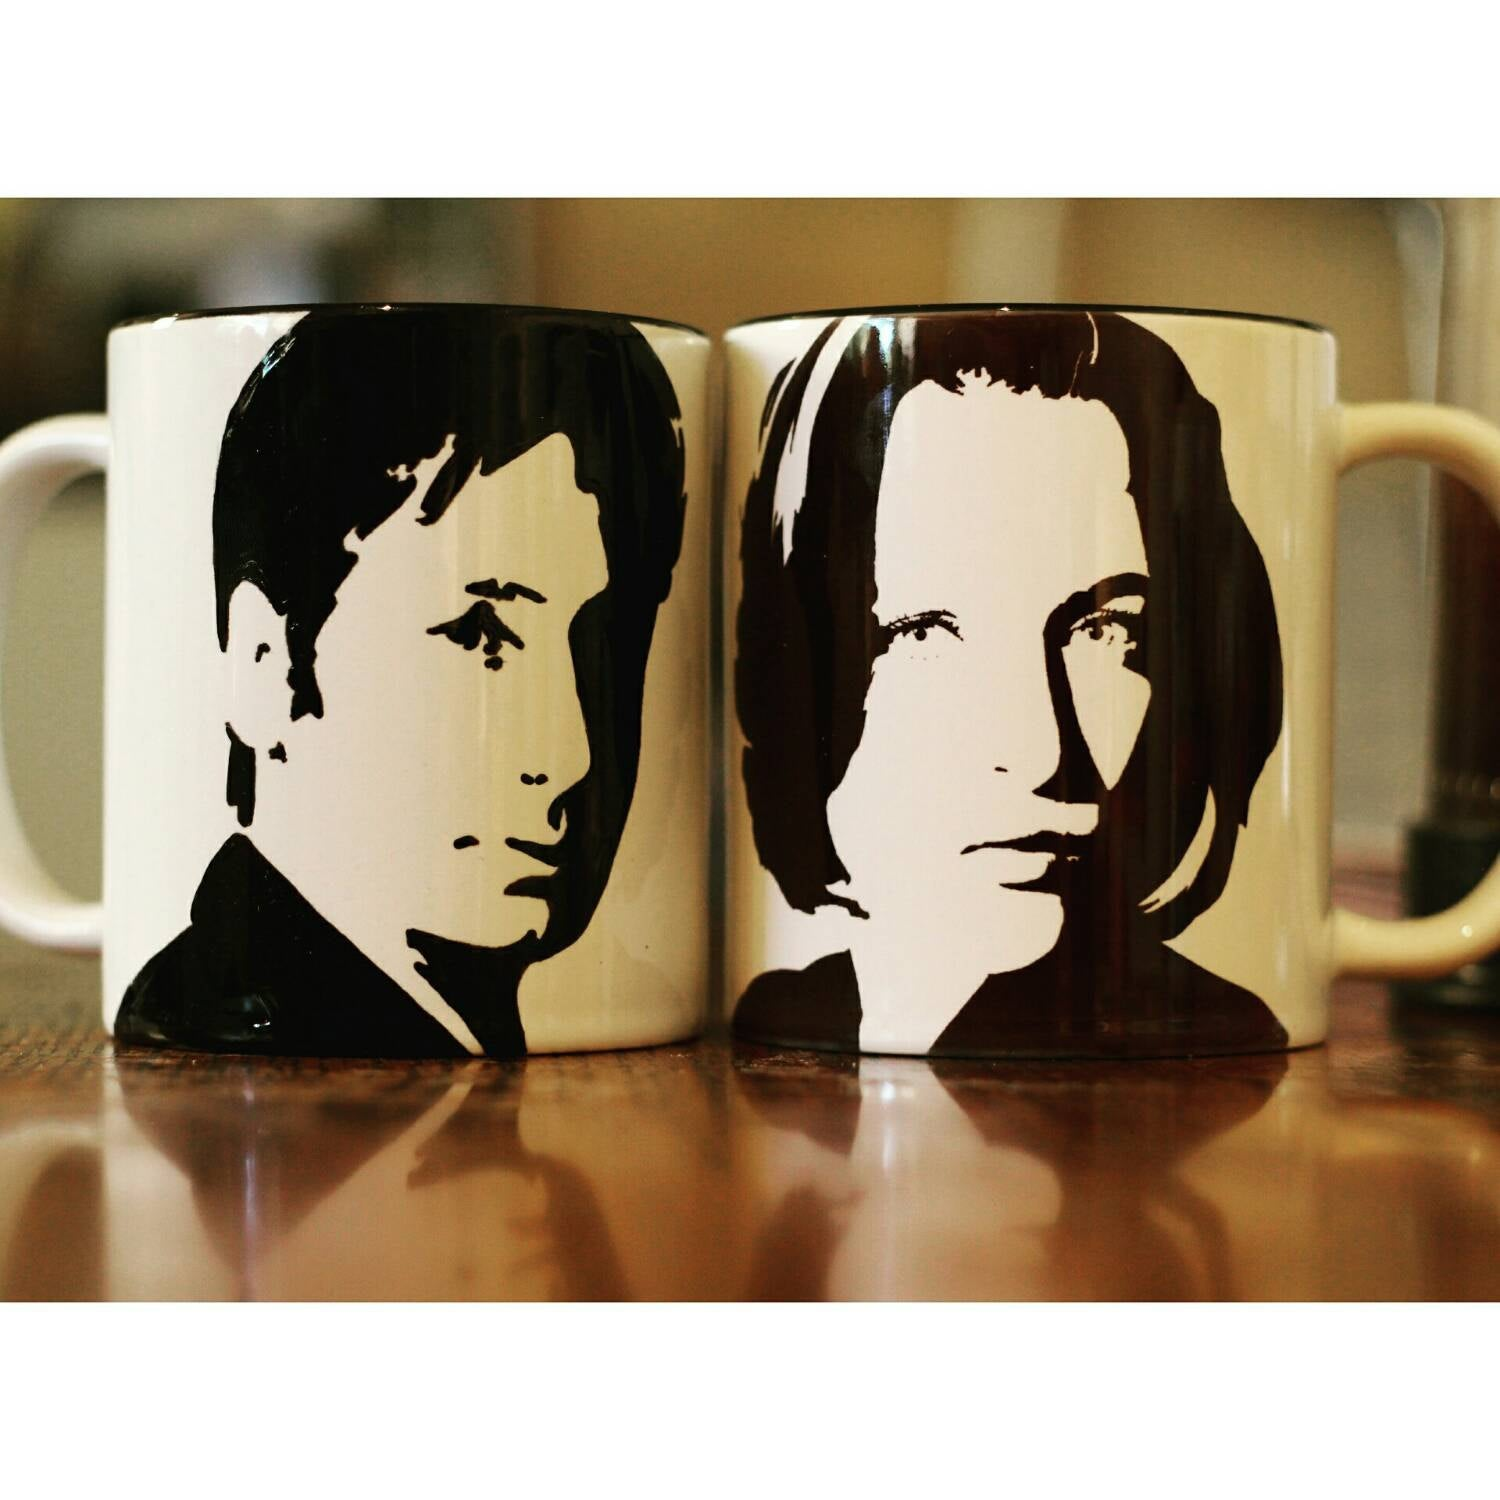 Mulder and Scully, David Duchovny, Gillian Anderson, X Files, Californication, Hannibal,  cup set - ByCandlelight27